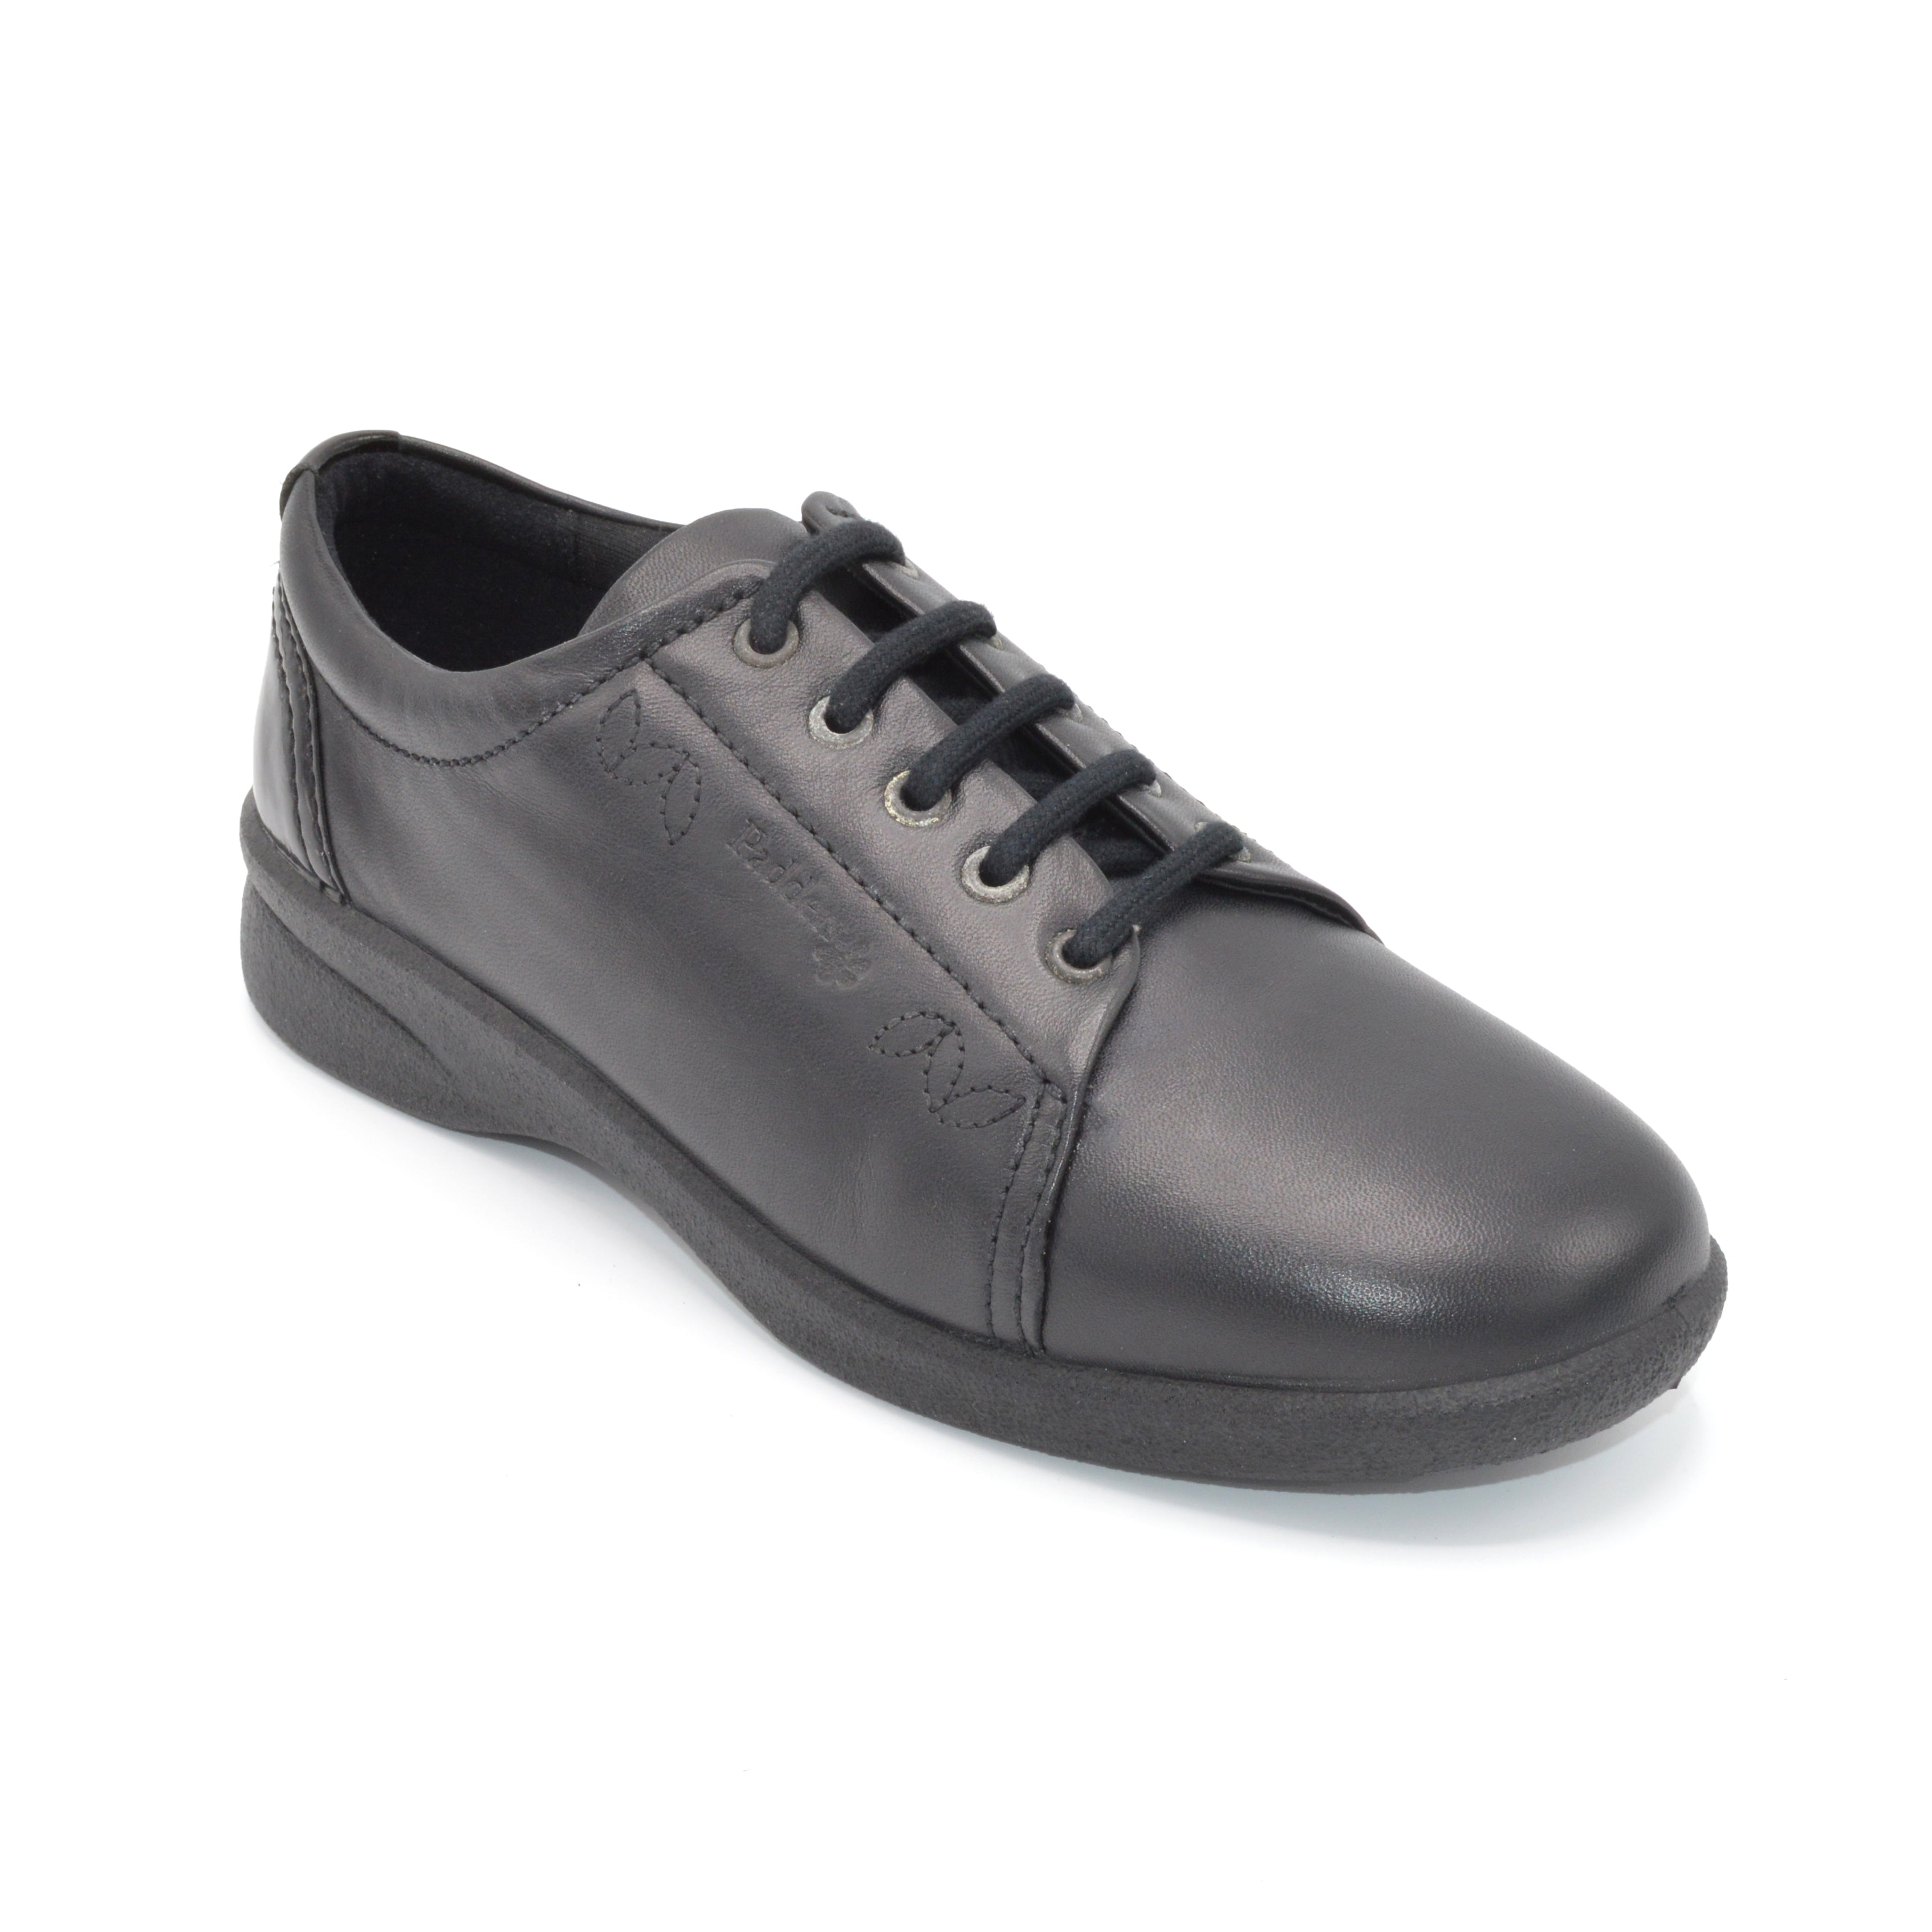 Comfortable Black Walking Shoe For Hammer Toes